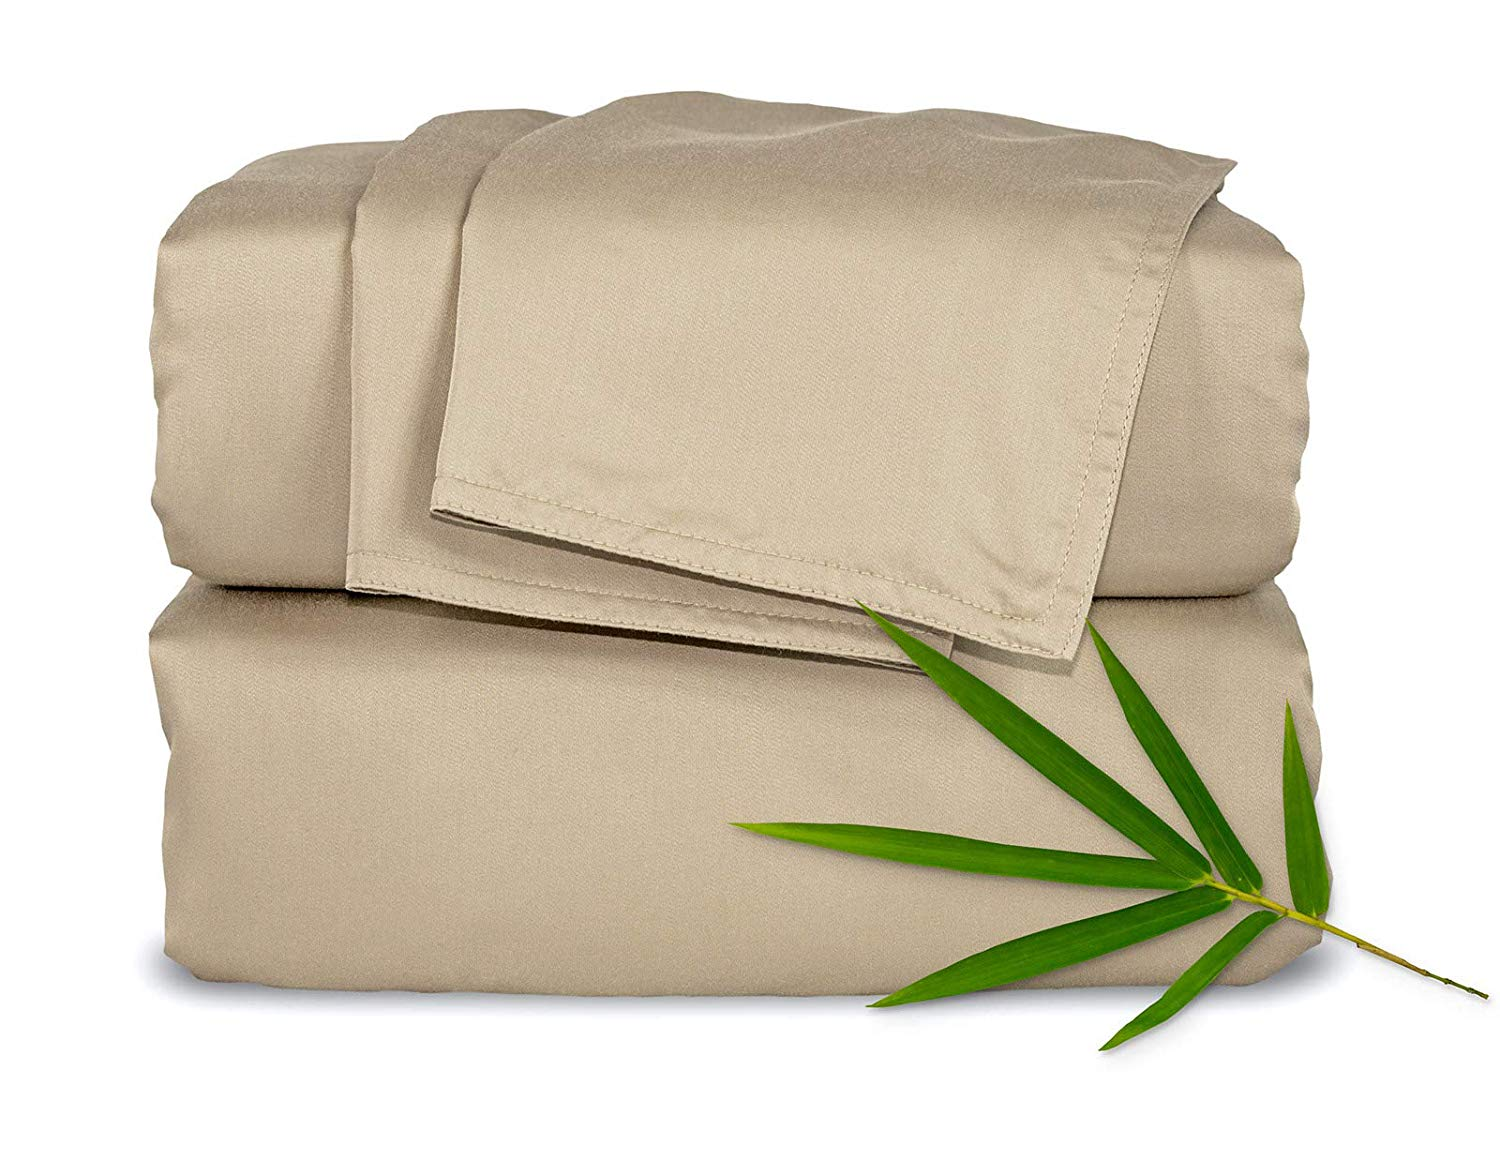 Pure Bamboo Sheets King 4pc Bed Sheet Set - 100% Bamboo Luxuriously Soft Bed Sheets (King, Sand)